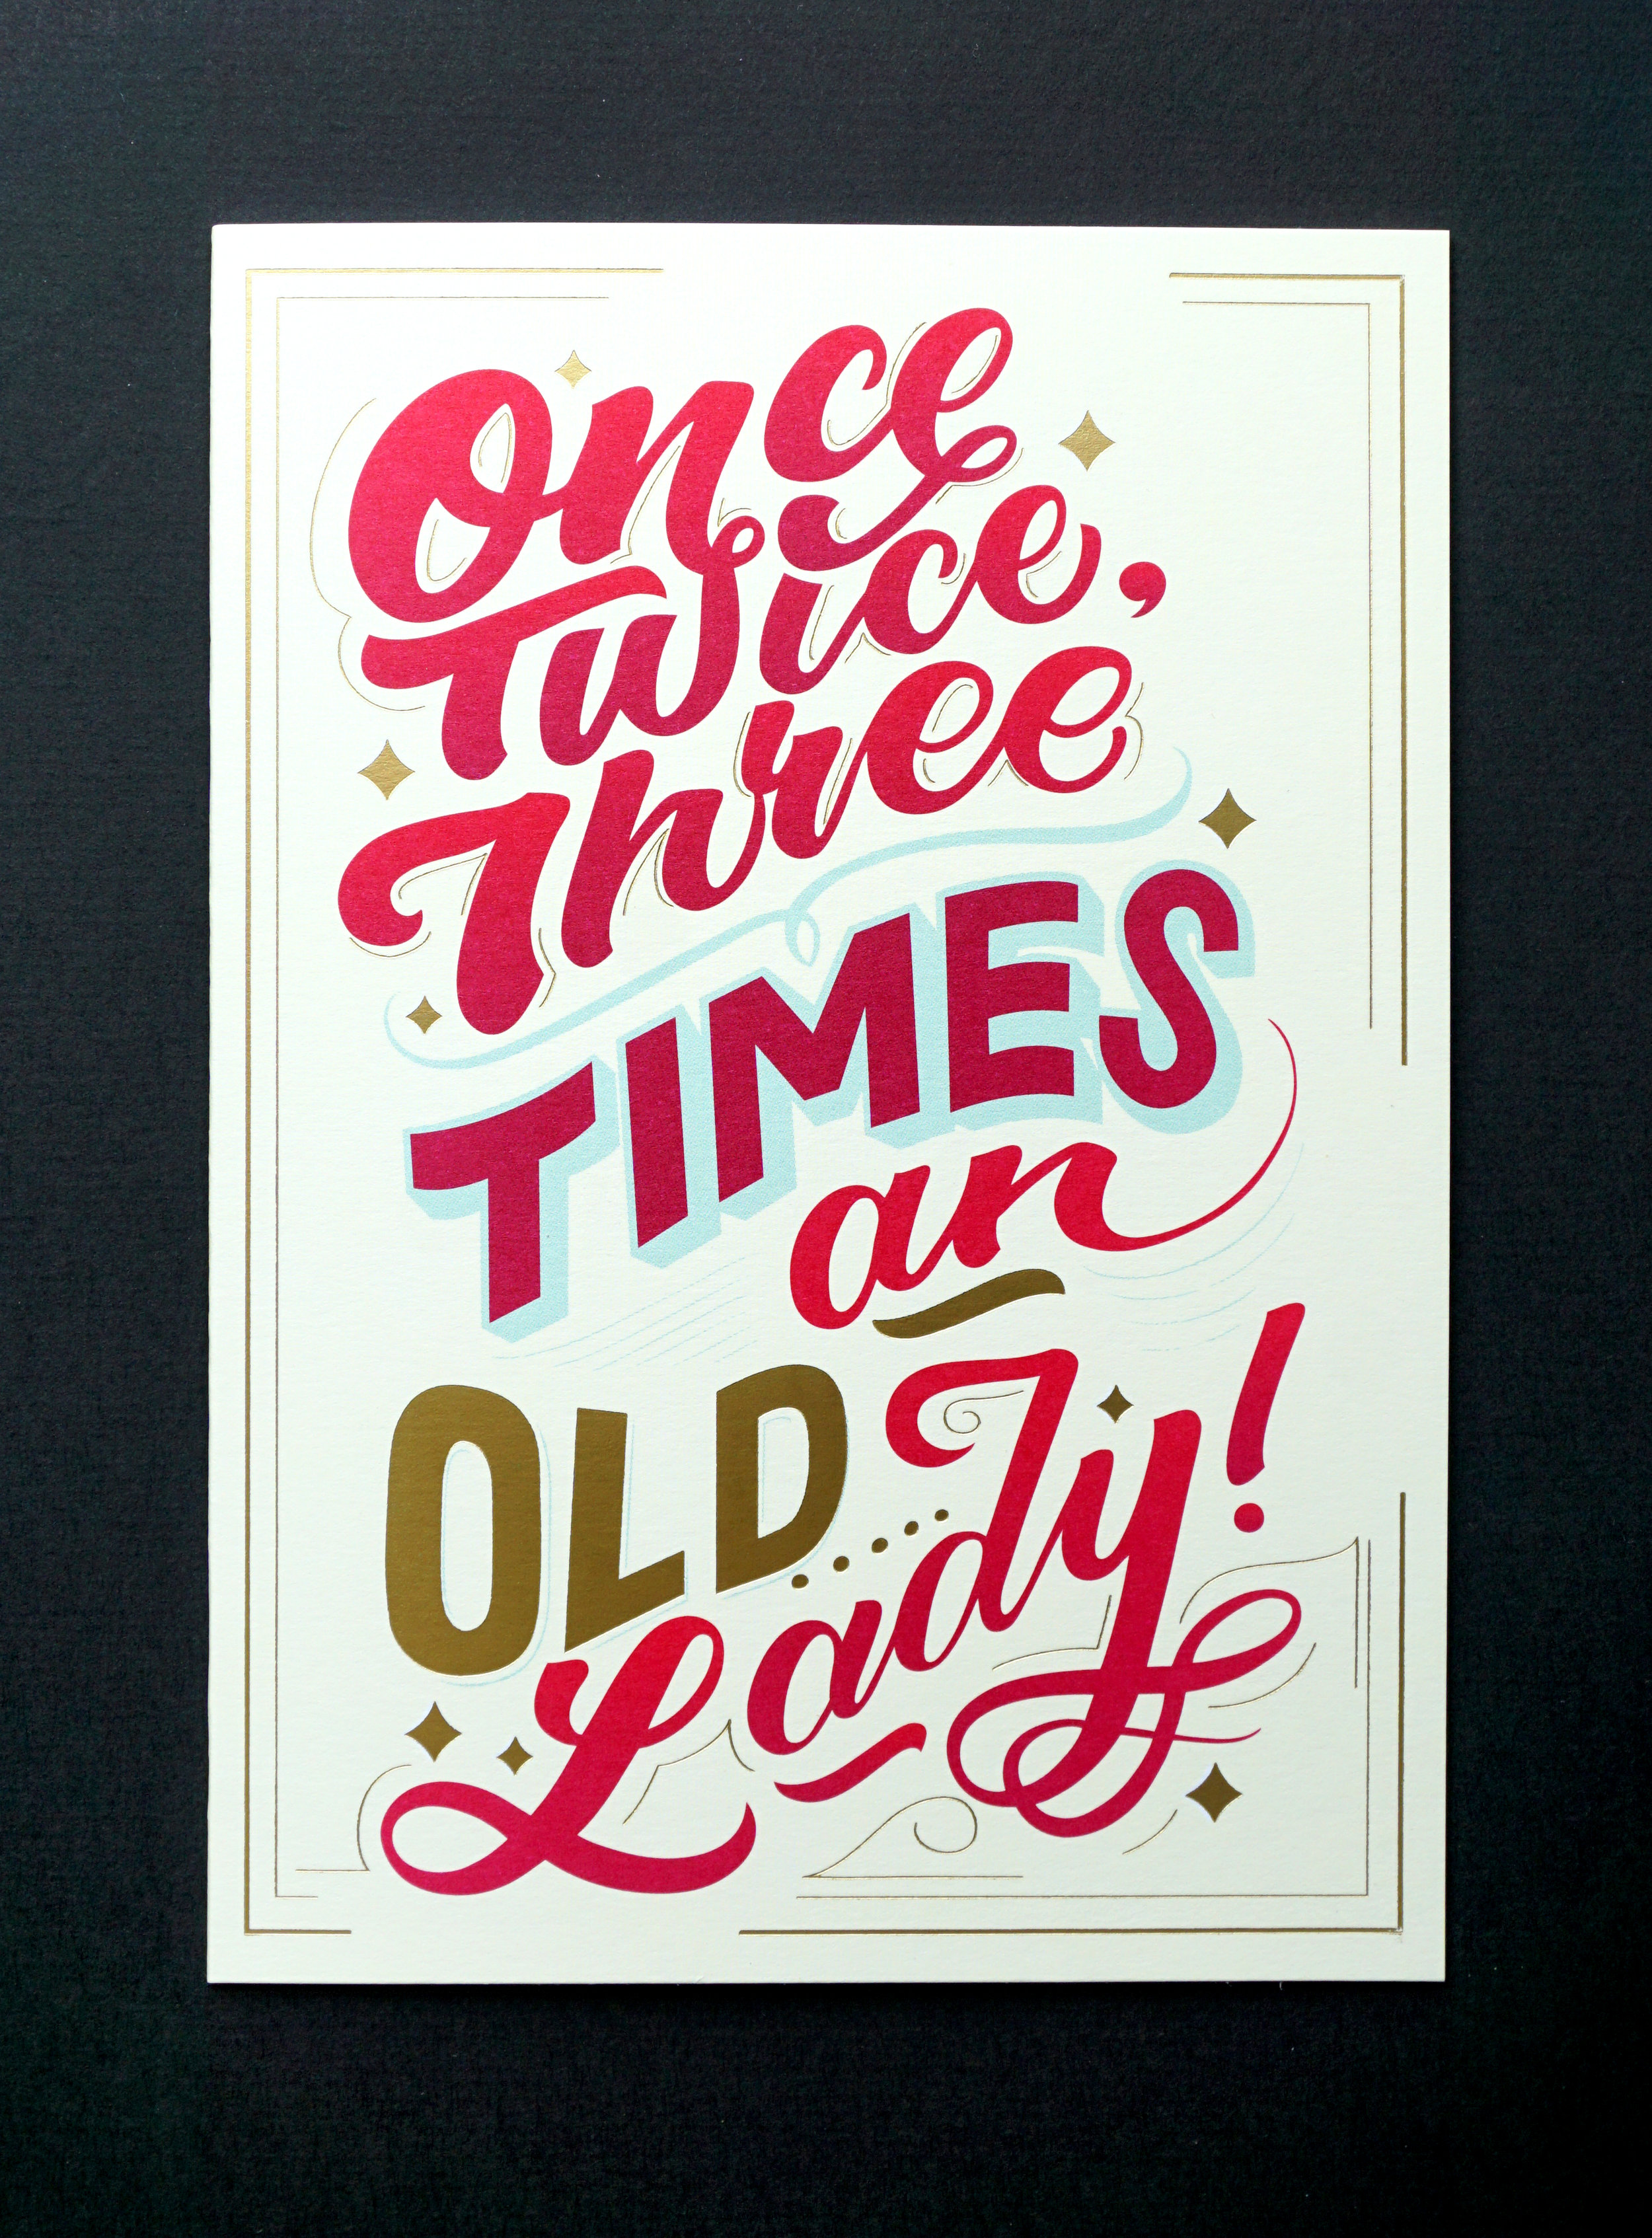 Lana-Hughes-once-twice-three-times-an-old-lady-yourself-scribbler-cards.JPG